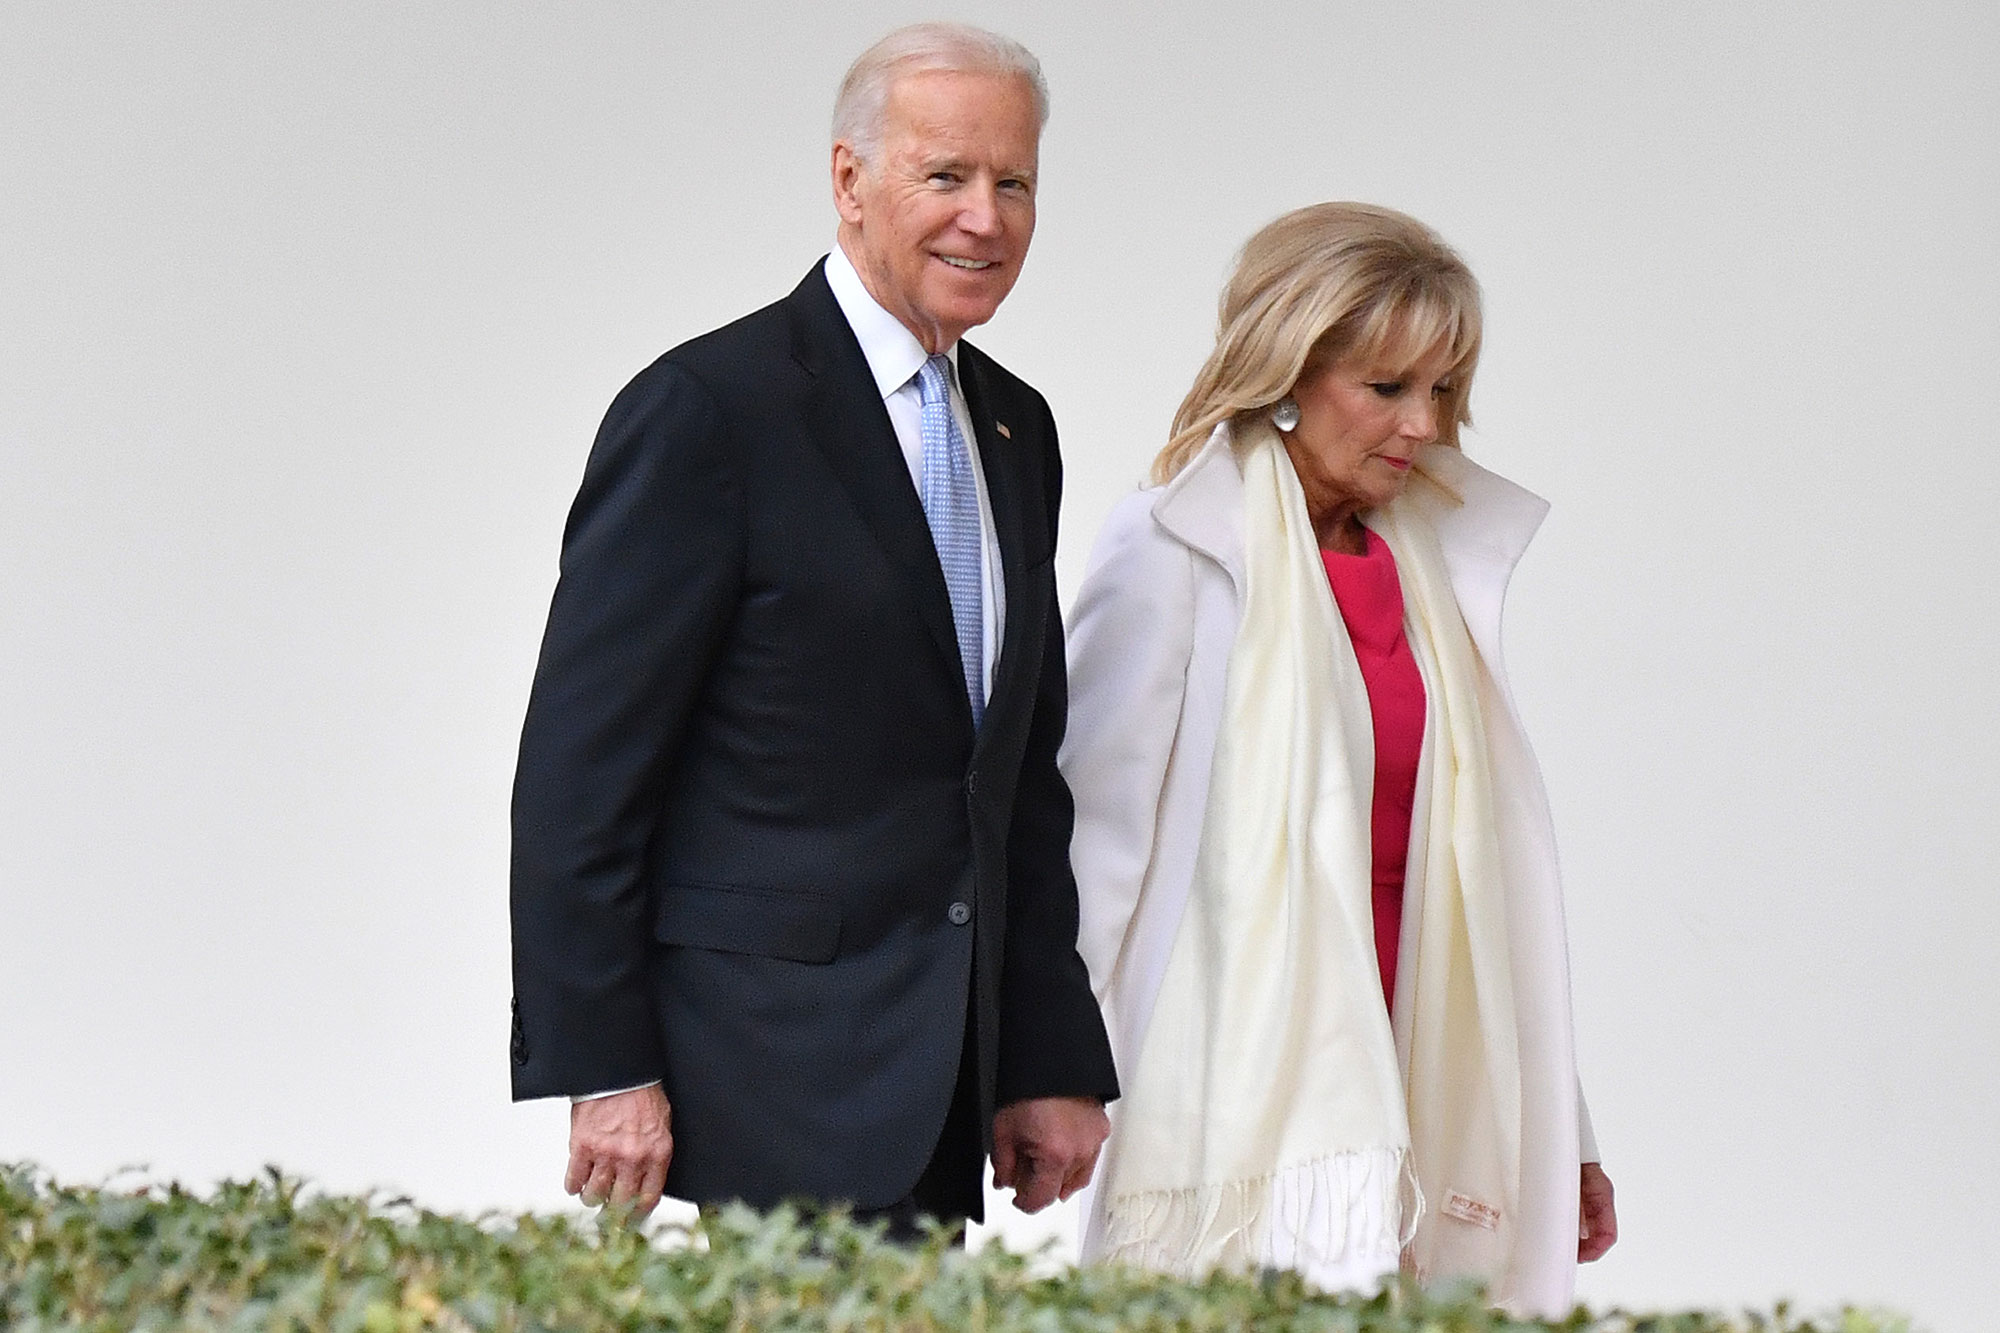 WASHINGTON, DC - JANUARY 20: Vice President Joe Biden and Dr. Jill Biden leaves the White House for the final time as the nation prepares for the inauguration of President-elect Donald Trump on January 20, 2017 in Washington, D.C. Trump becomes the 45th President of the United States. (Photo by Kevin Dietsch-Pool/Getty Images)